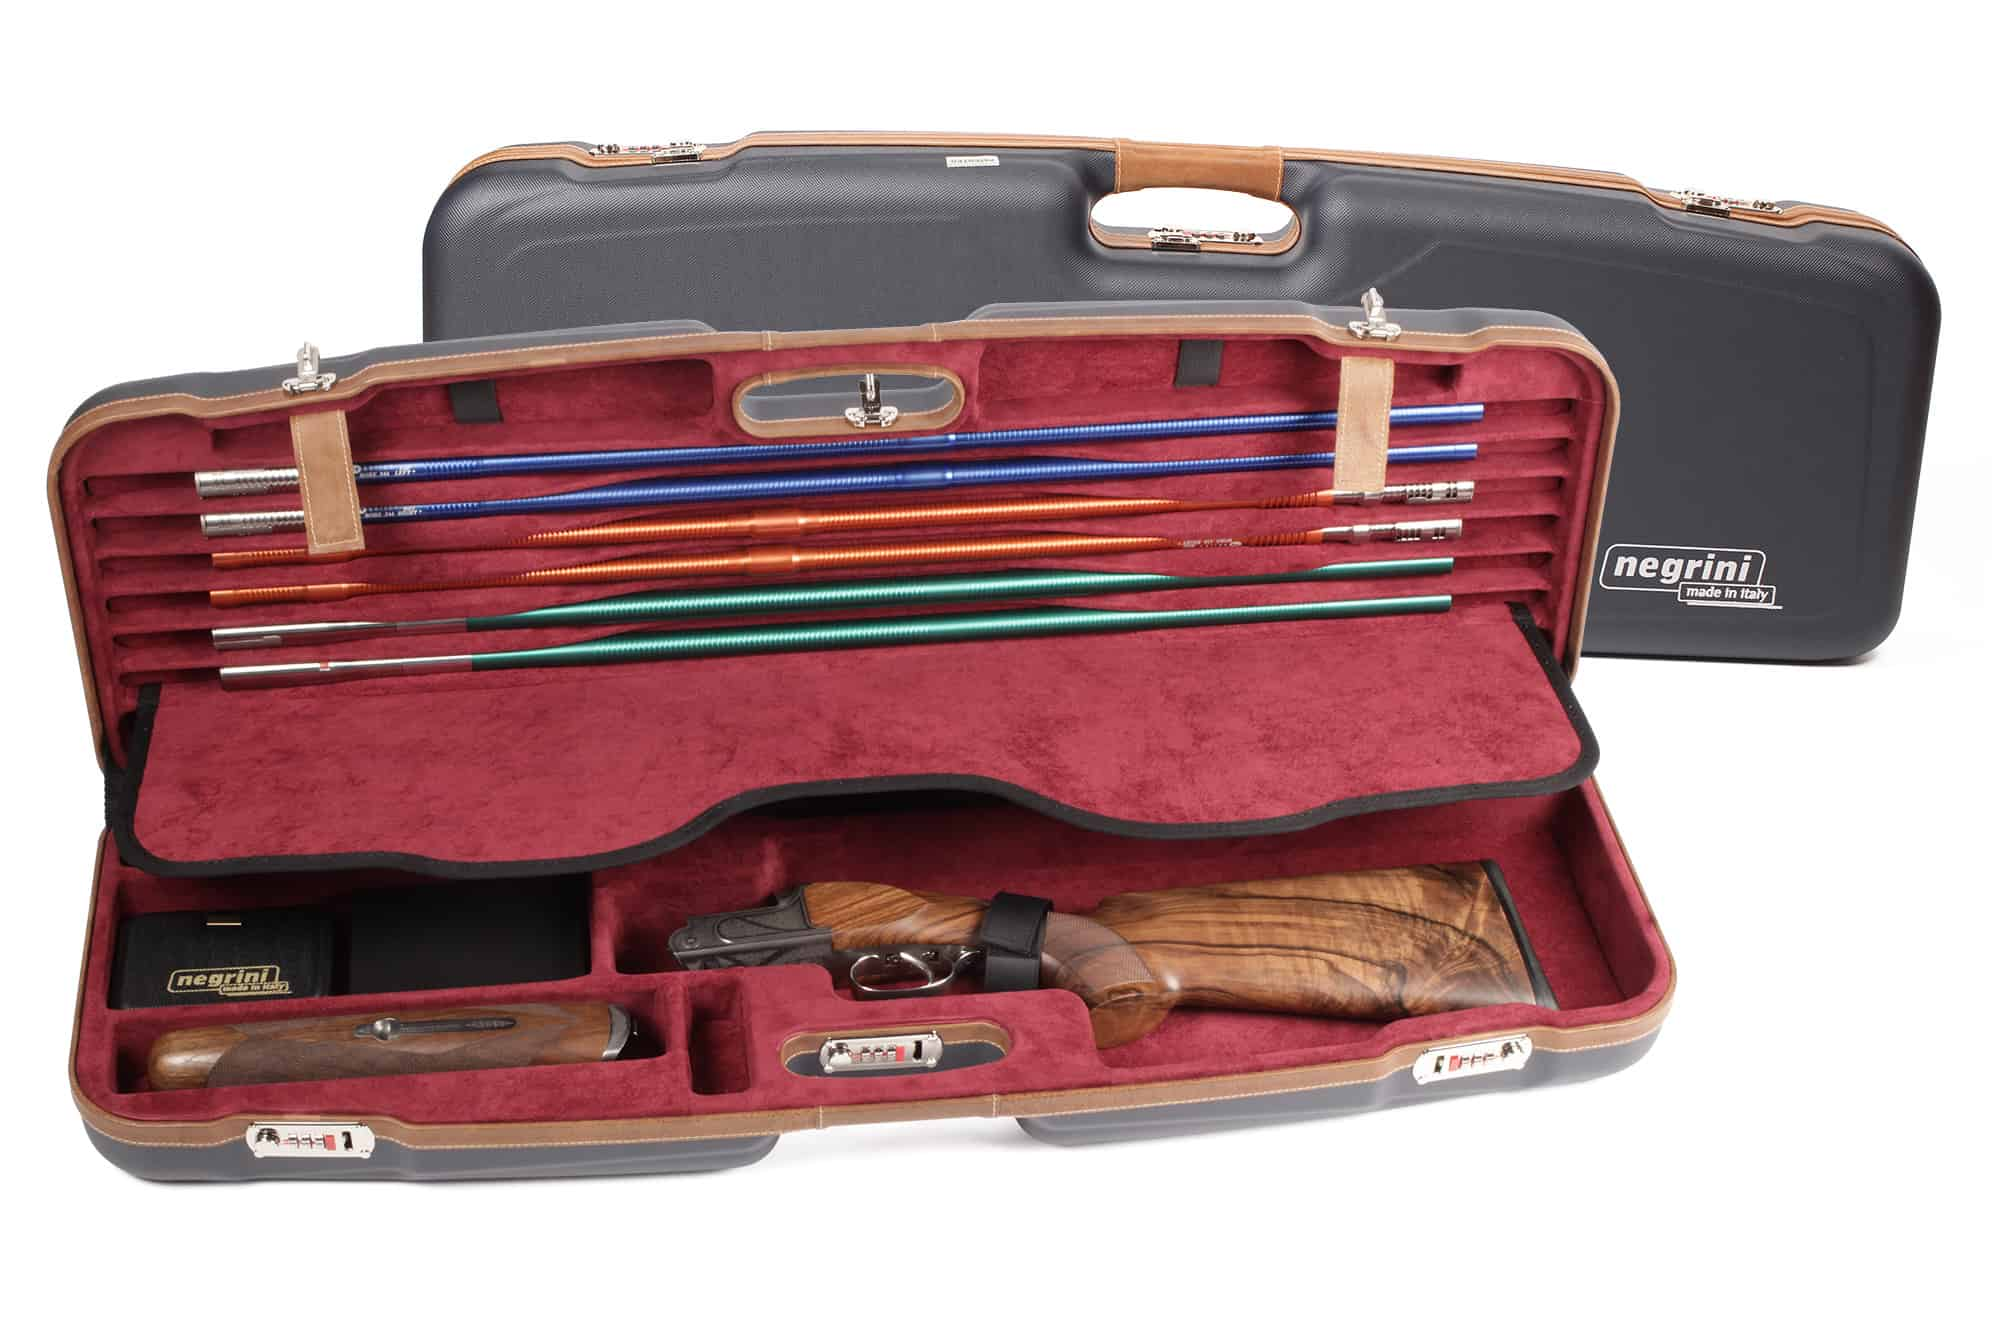 Negrini Gun Shotgun - 1622LX-TS/5228 - High Rib Shotgun case + Tube Sets